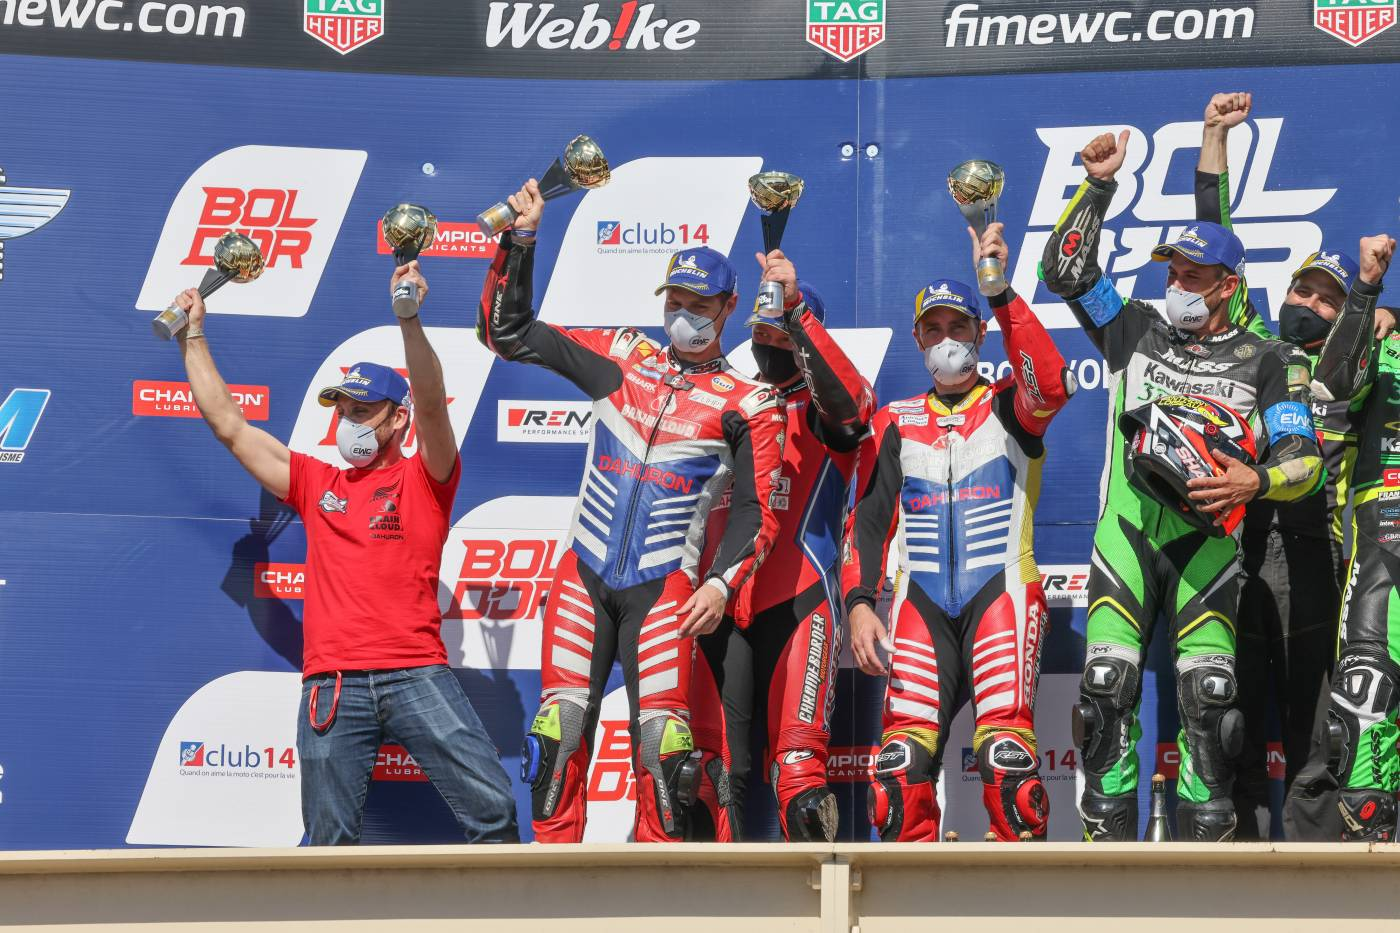 RAC 41 Chromeburner finishes second in Superstock and fourth overall at the Bol d'Or